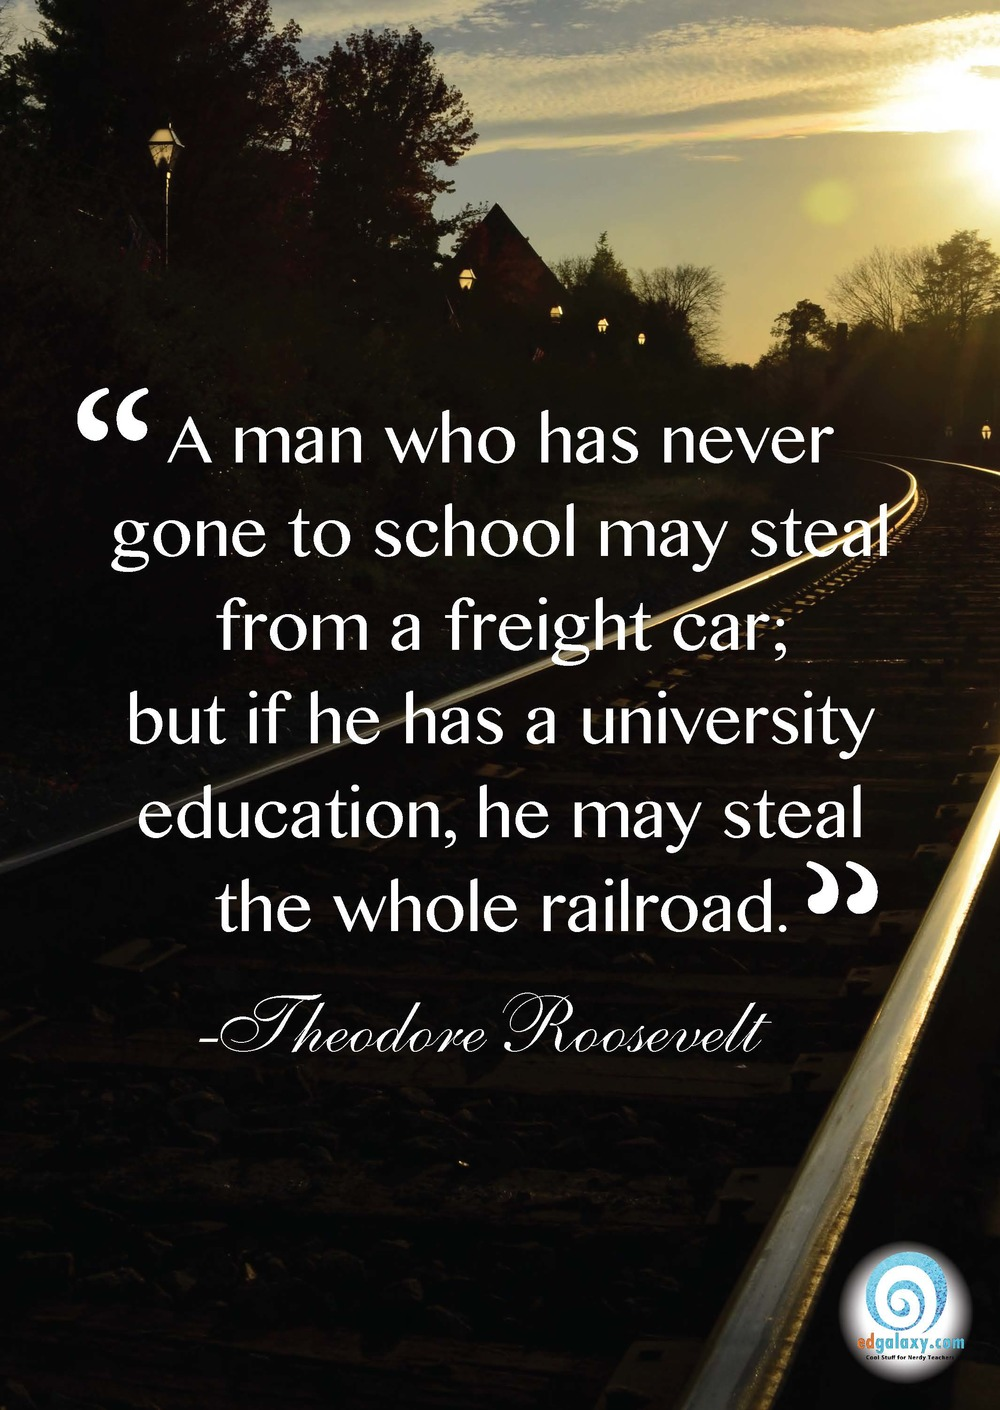 Inspirational Quotes About Education Inspiration Education Quotes  Famous Quotes For Teachers And Students .